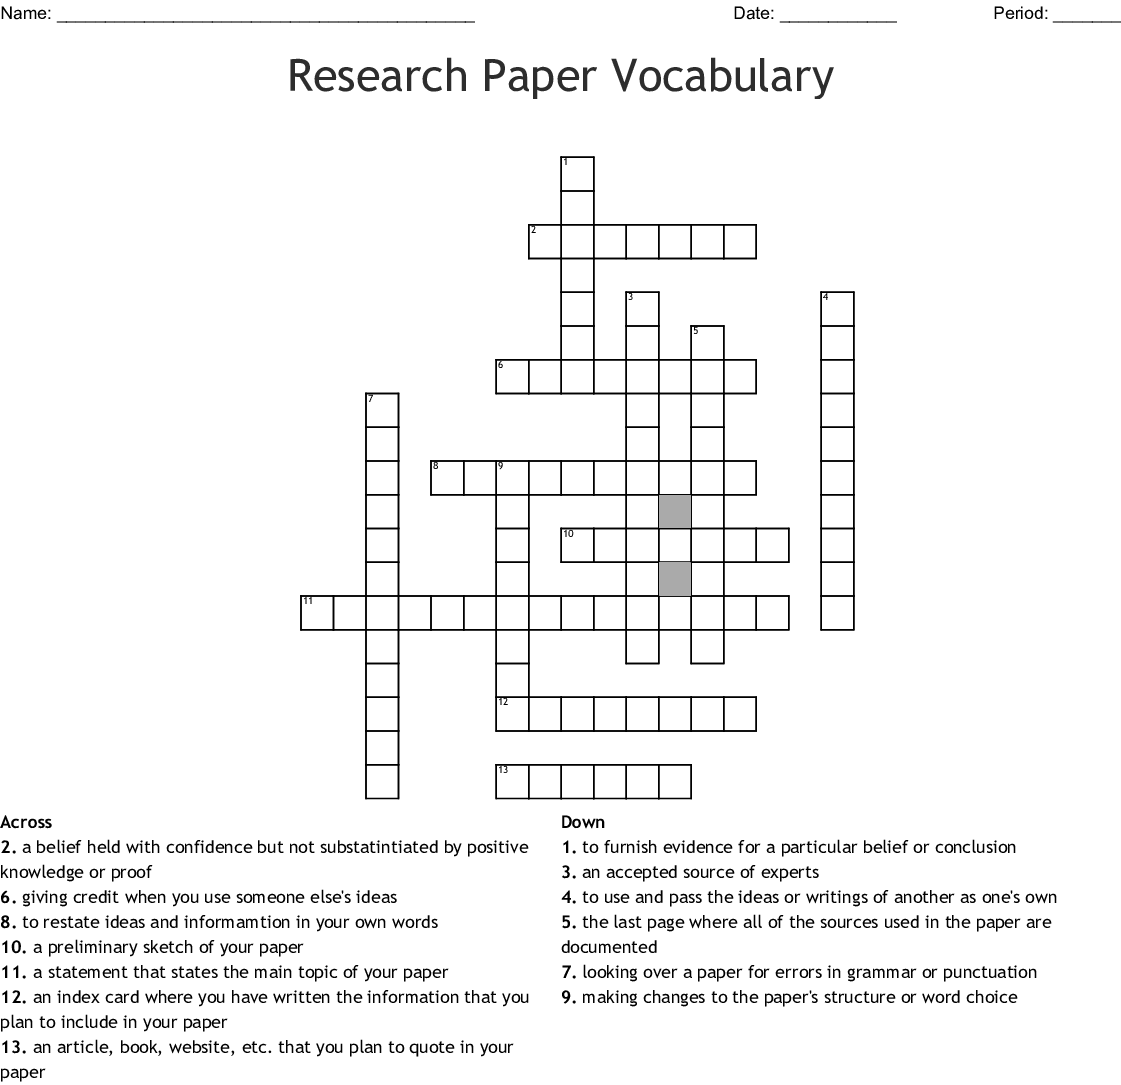 005 Research Vocabulary 149348 Academic Researchs Crossword Awful Papers Paper Clue Full